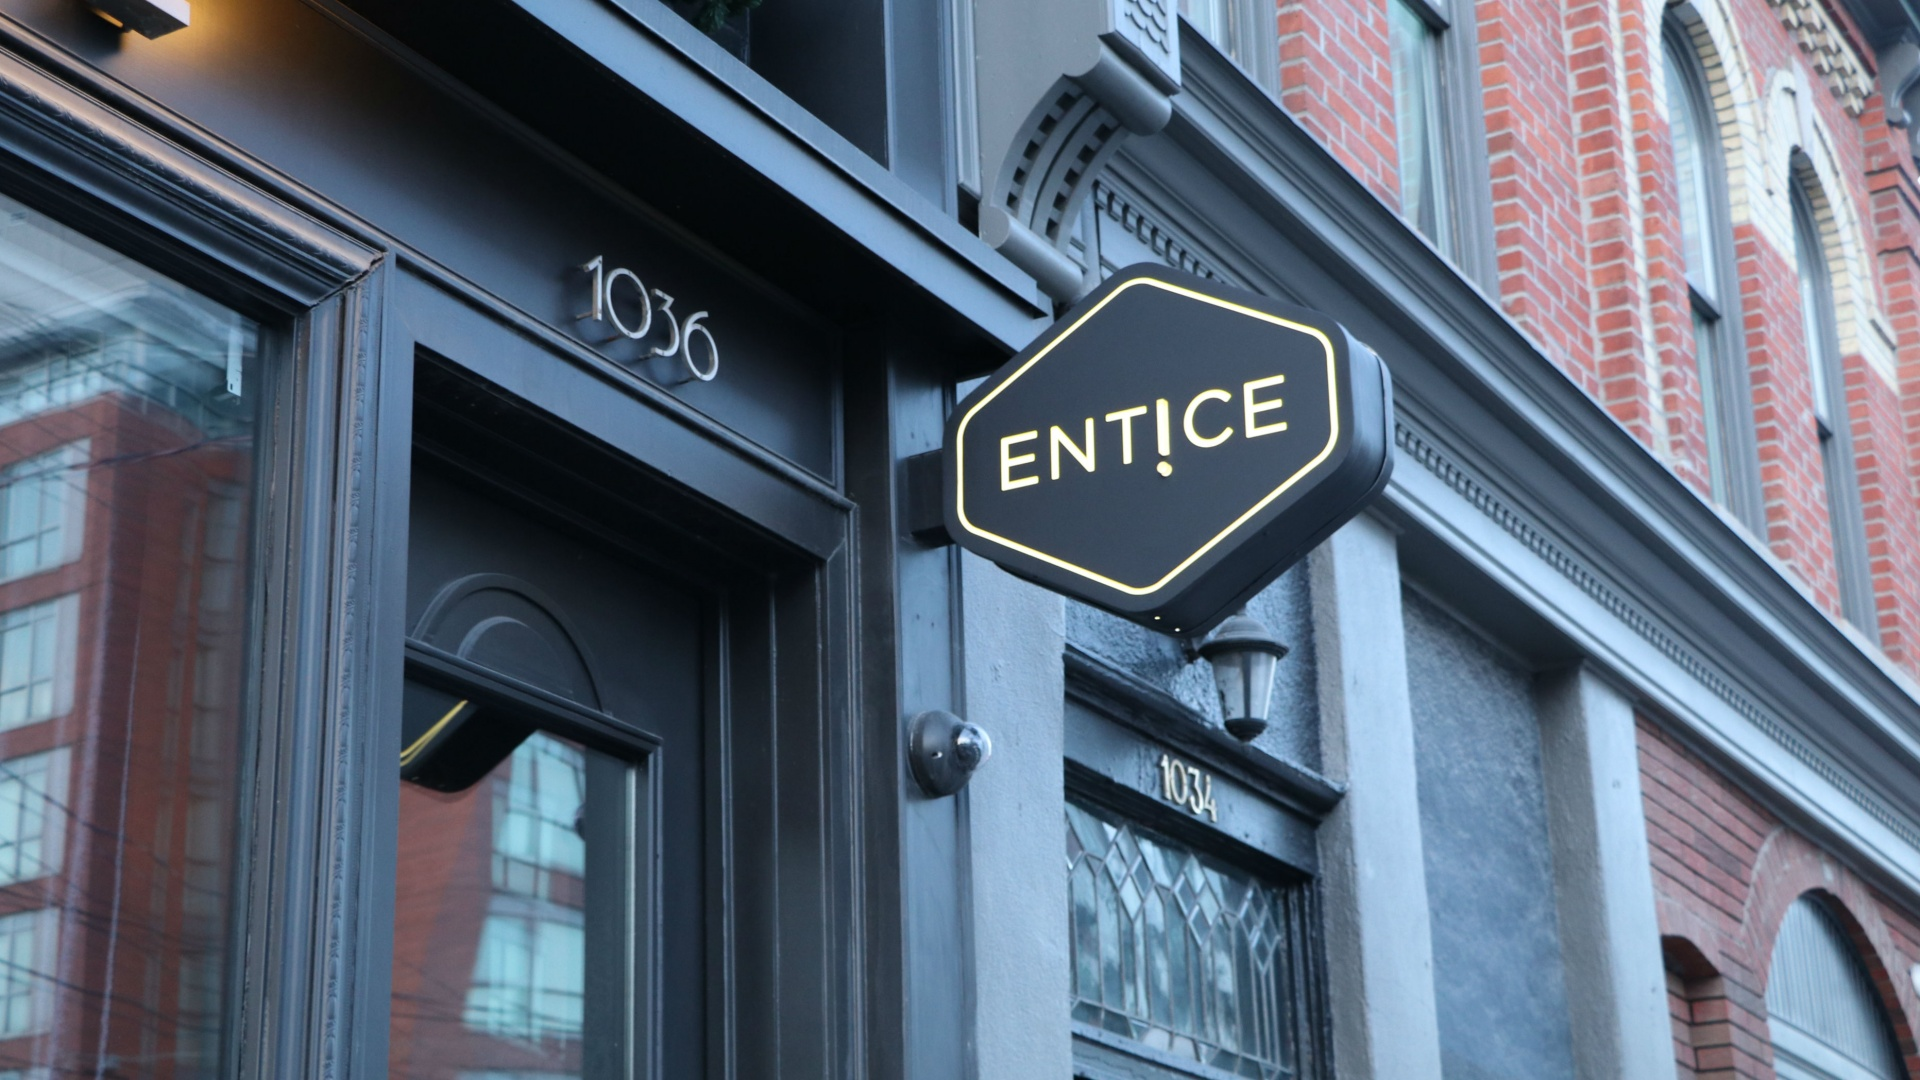 Win a three-course meal for four with wine at Entice Culinary Lounge